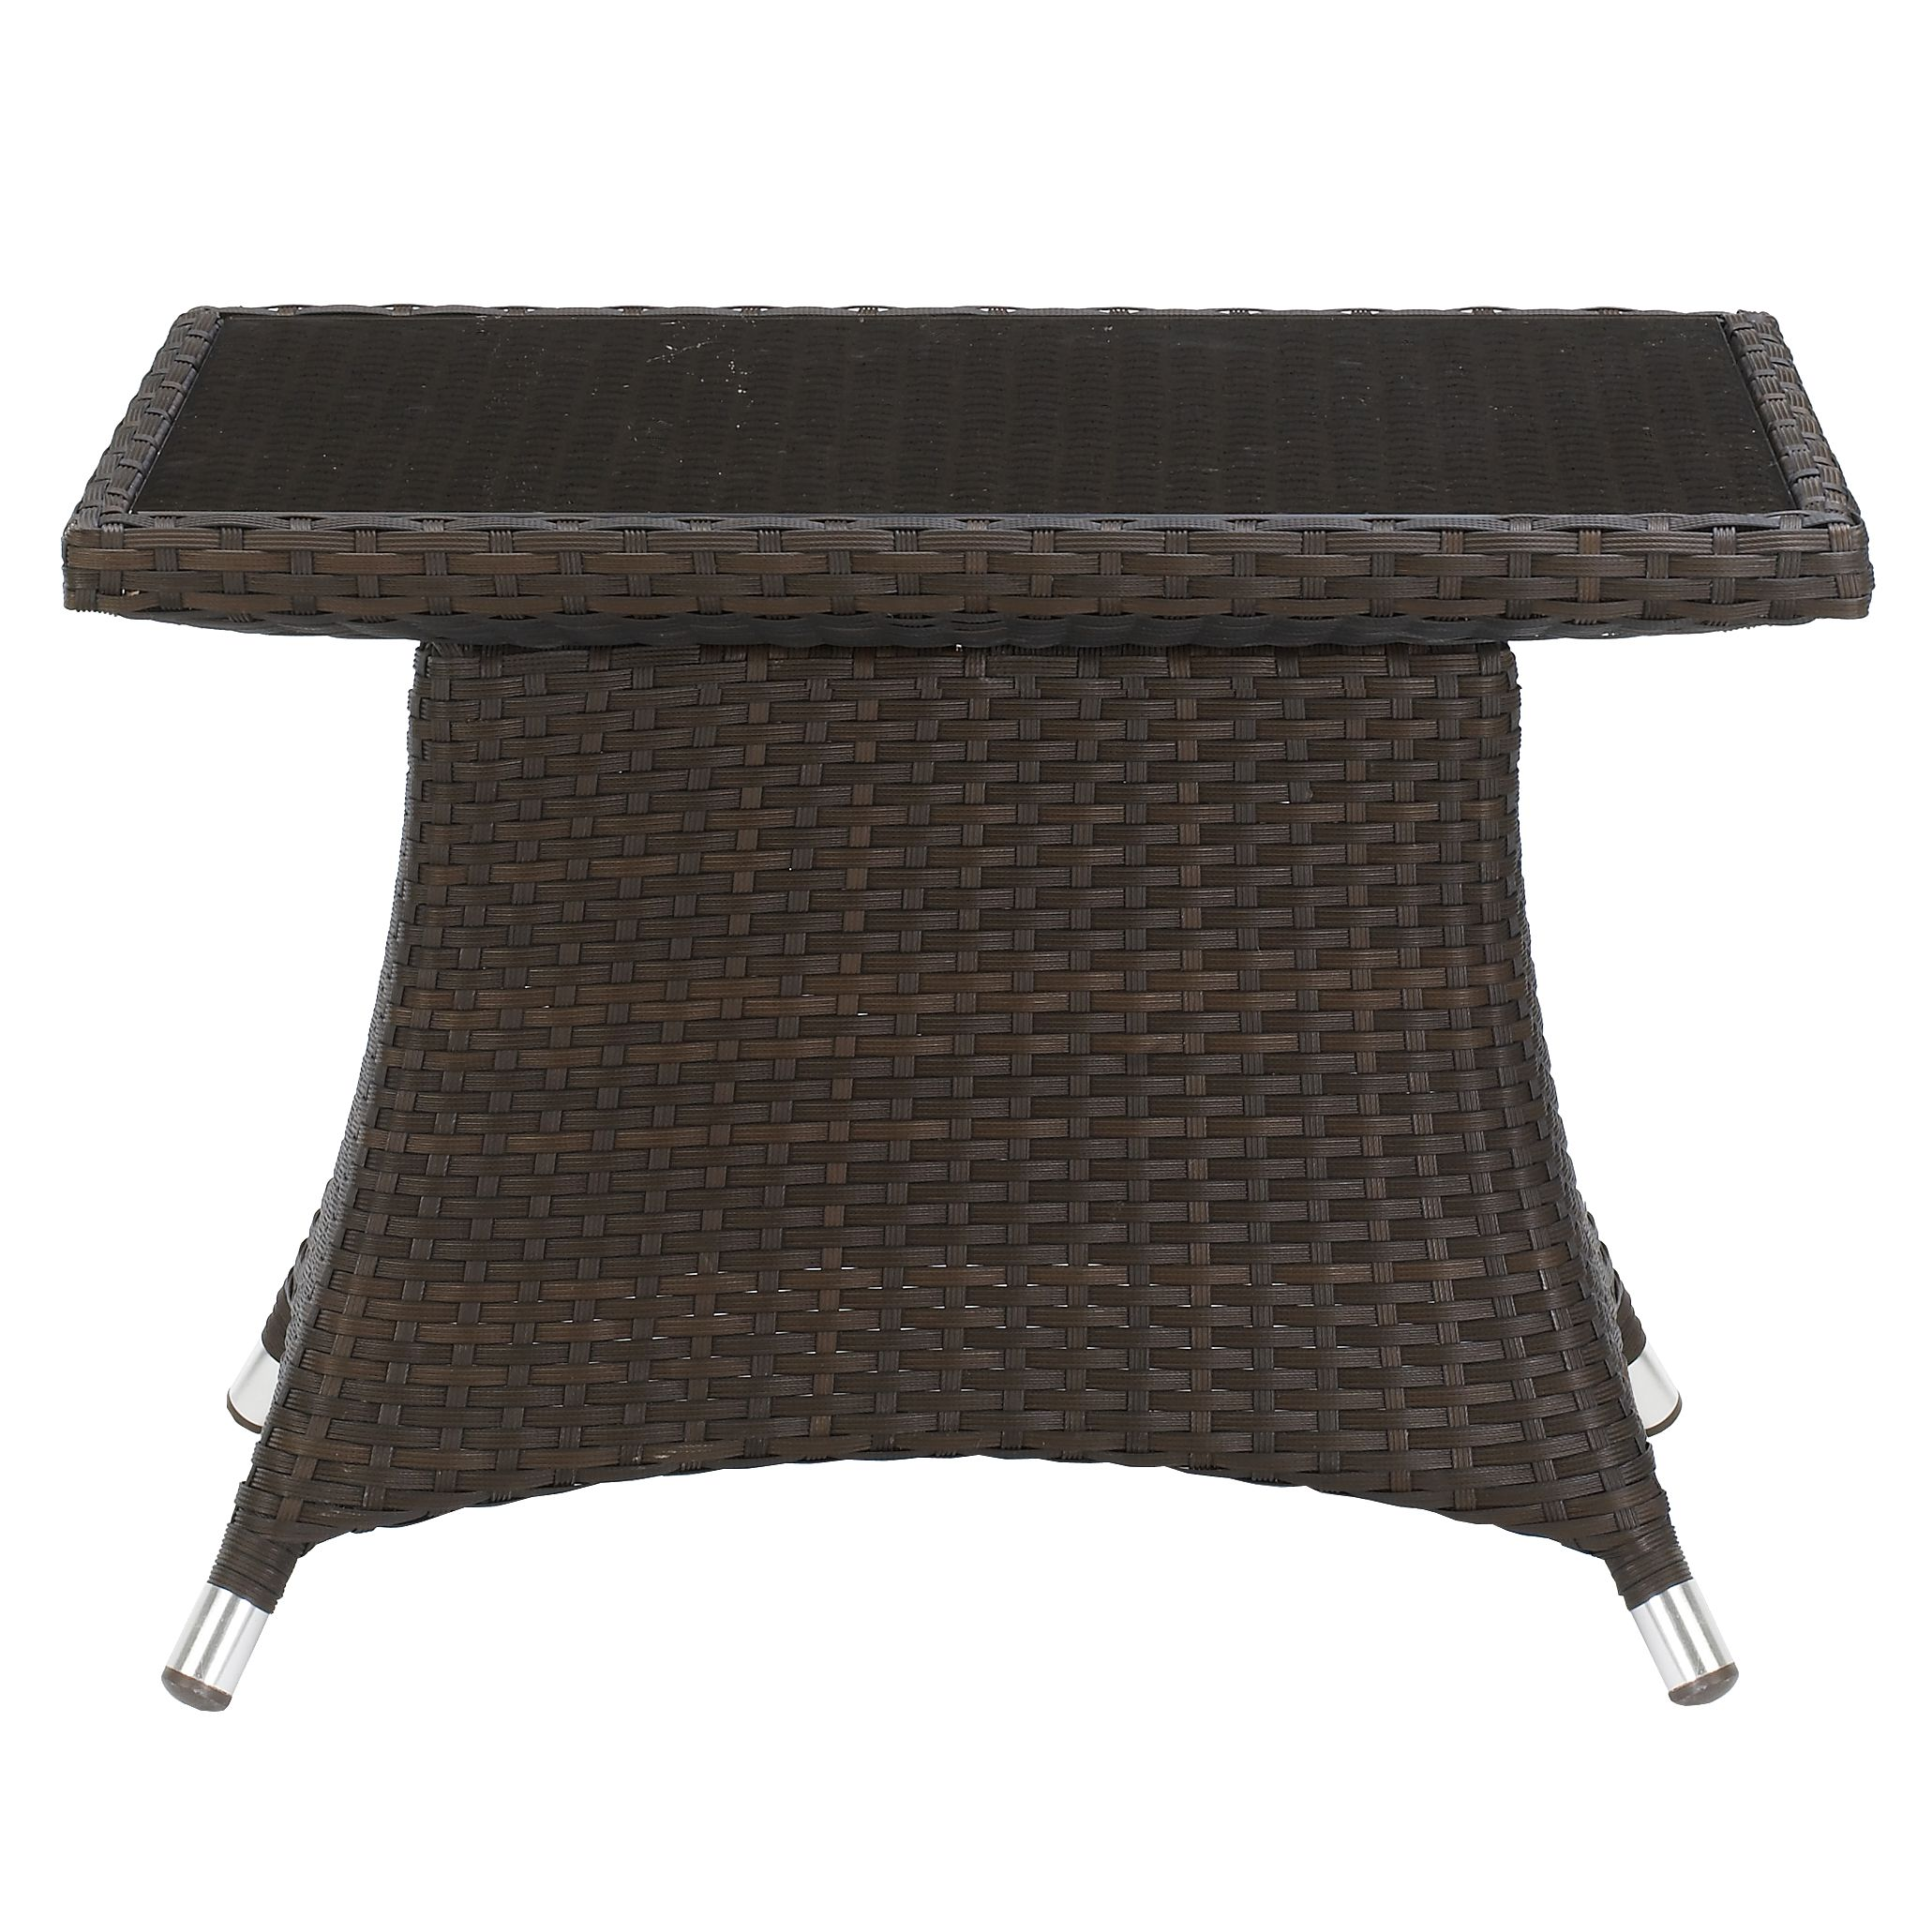 John Lewis Darcy Outdoor Coffee table